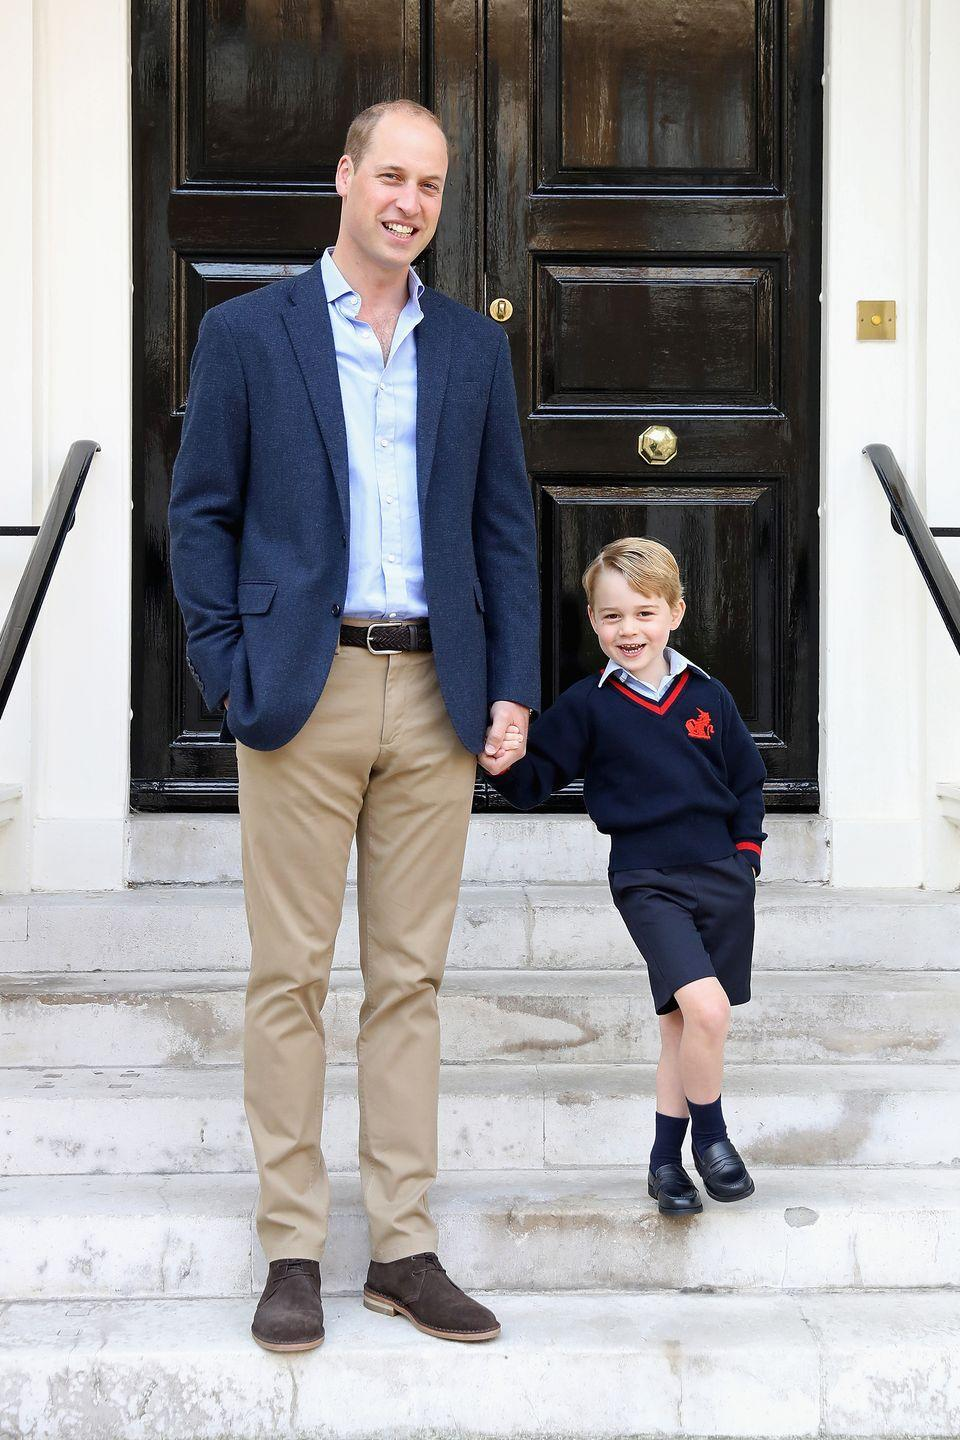 <p>Prince William poses with Prince George at Kensington Palace ahead of his first day of school. Just look at that excited smile! </p>